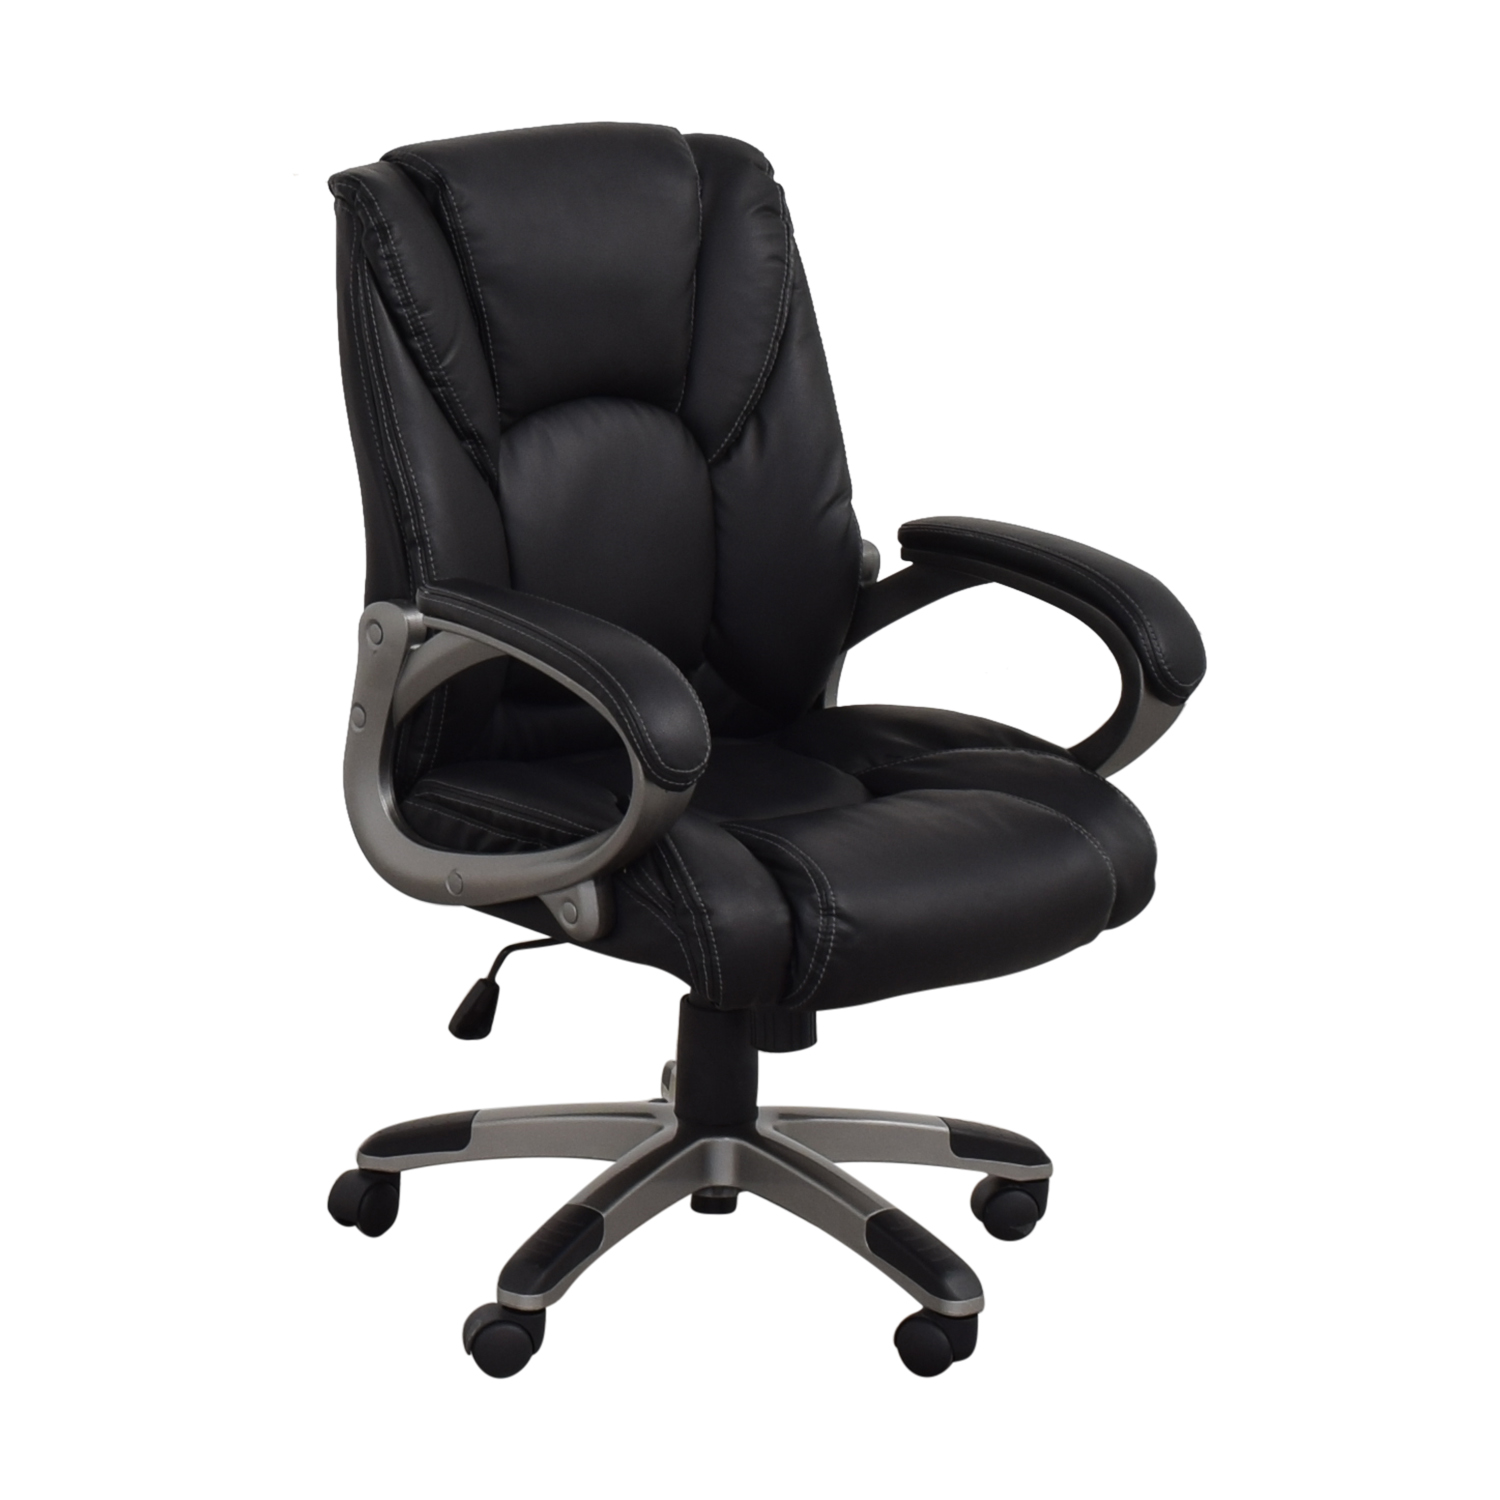 Office Depot Office Depot Home Office Chair coupon